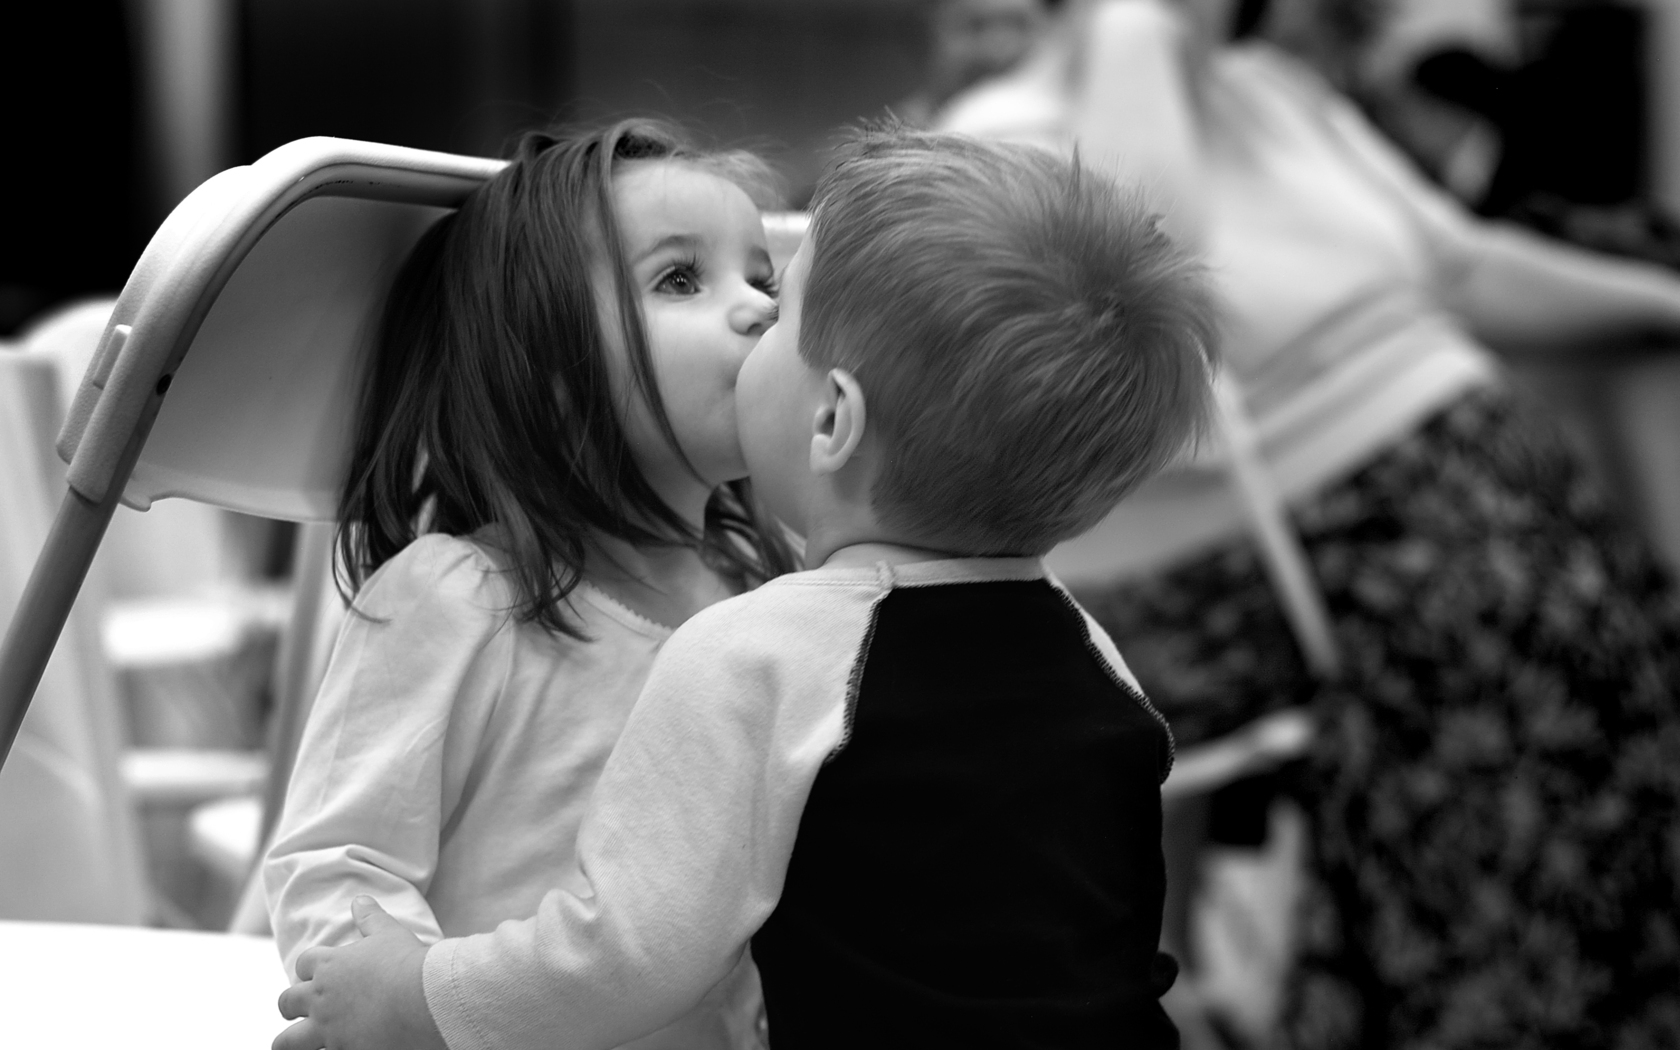 boy and girl kiss nyc educator love is in the lunchtime air and girl kiss boy